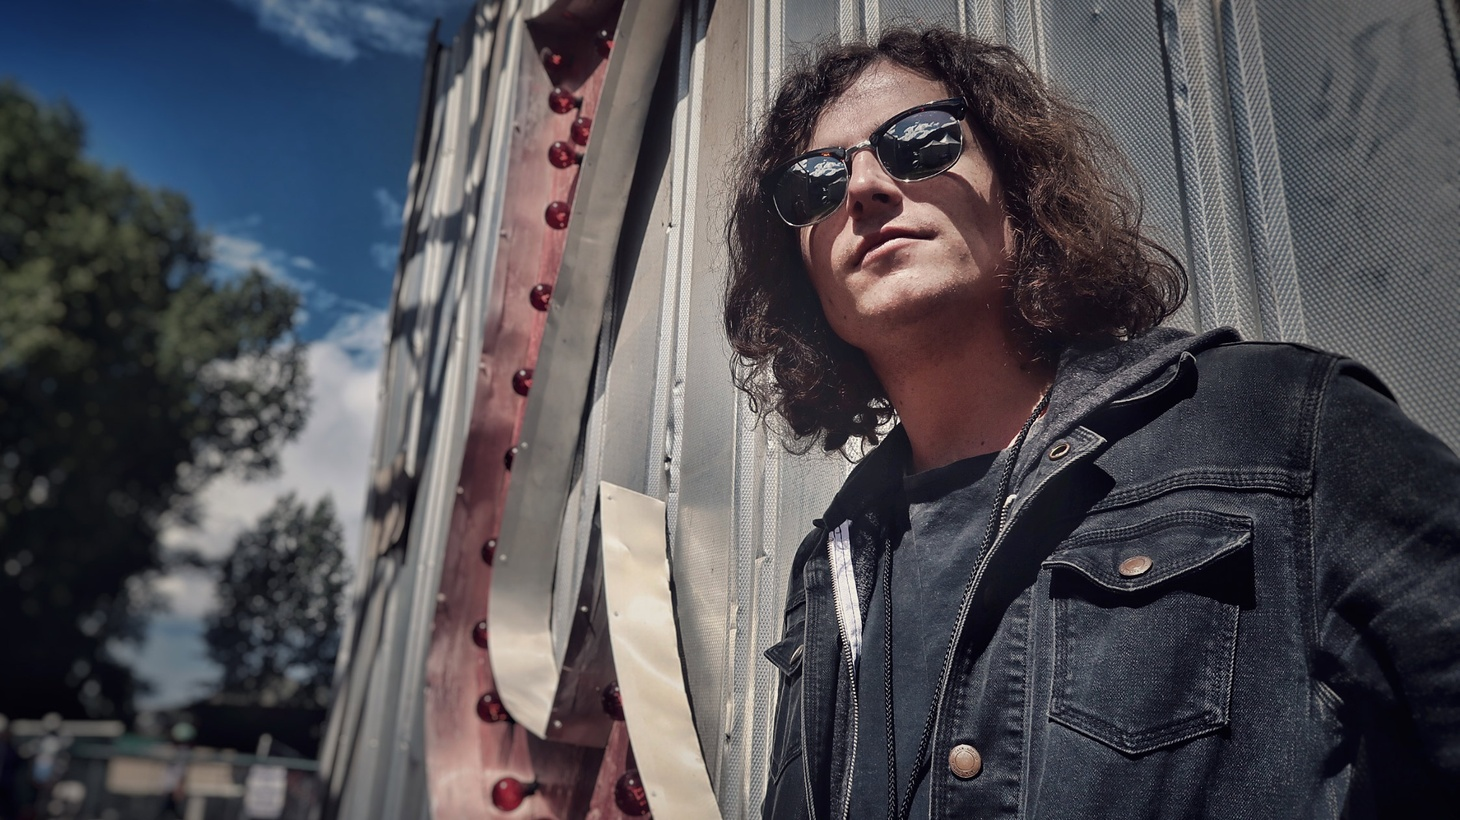 """Anne Litt describes Aussie rocker Hamish Anderson's take on the blues as """"elegant"""" though it's not a word typically associated with that style. His musical influences include Son House, Tom Petty, Robert Johnson and BB King."""